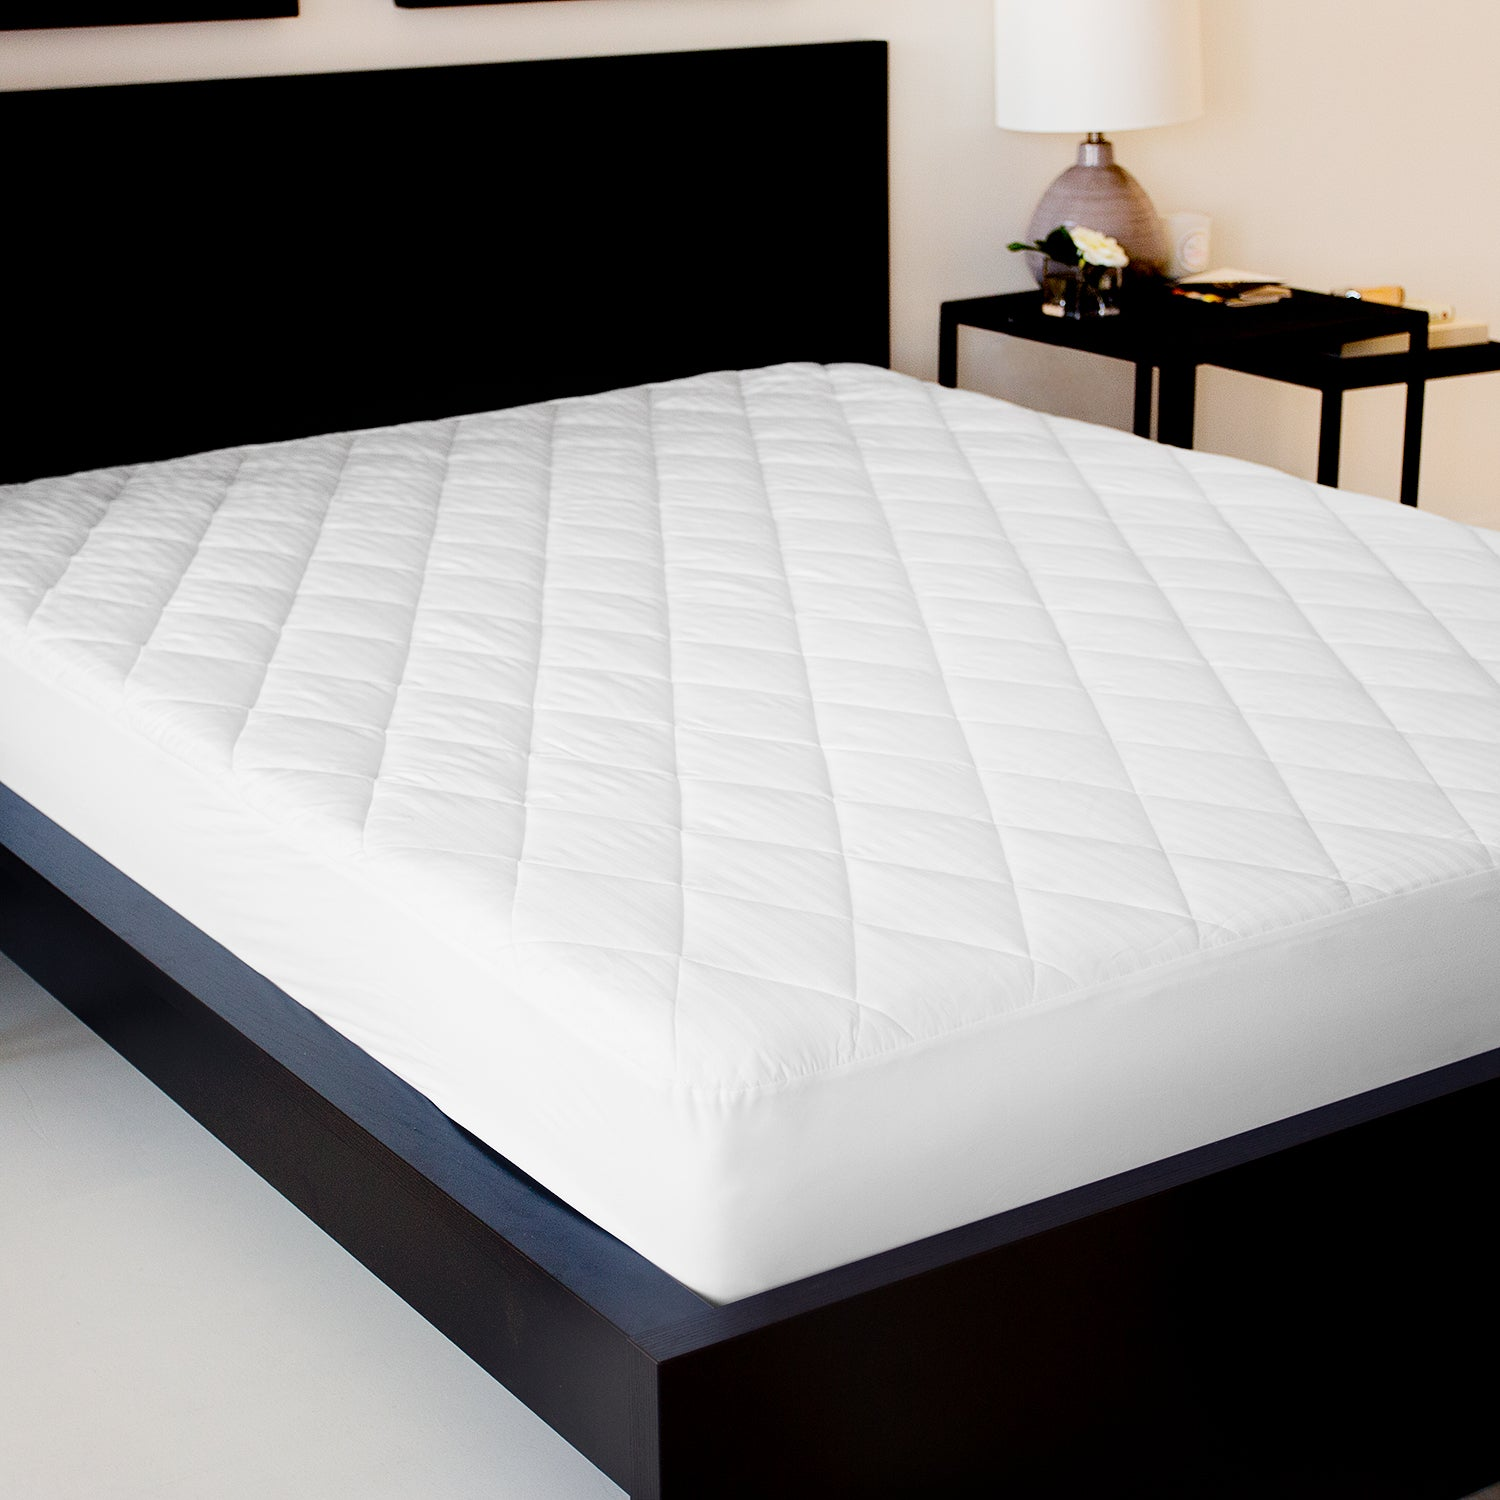 Malouf Sleep Tite Mattress Pad